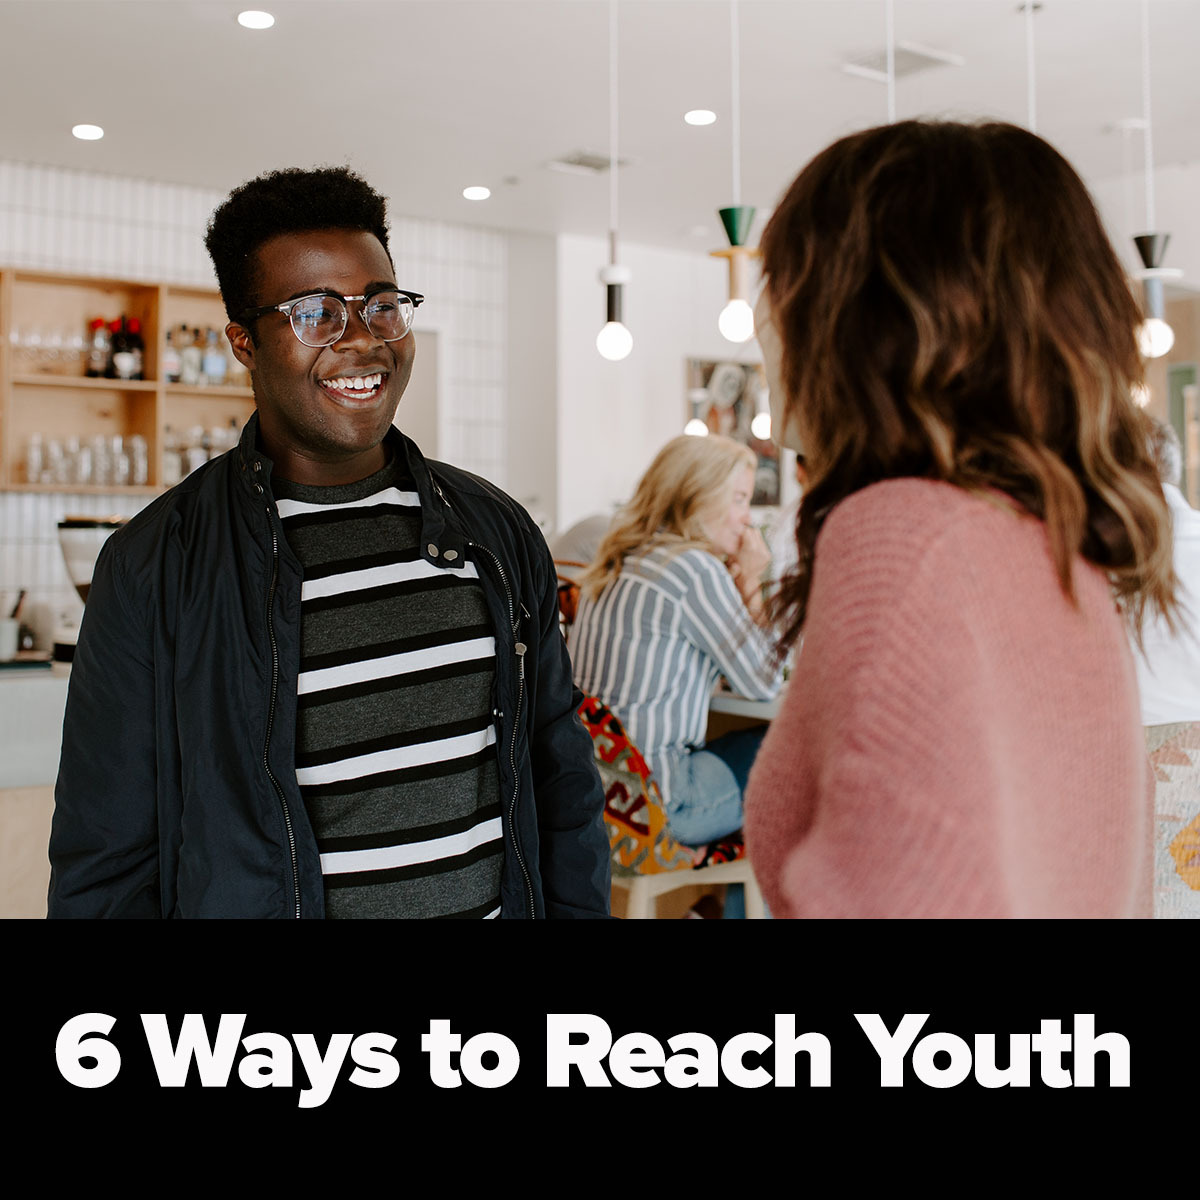 6 Ways to Reach Youth